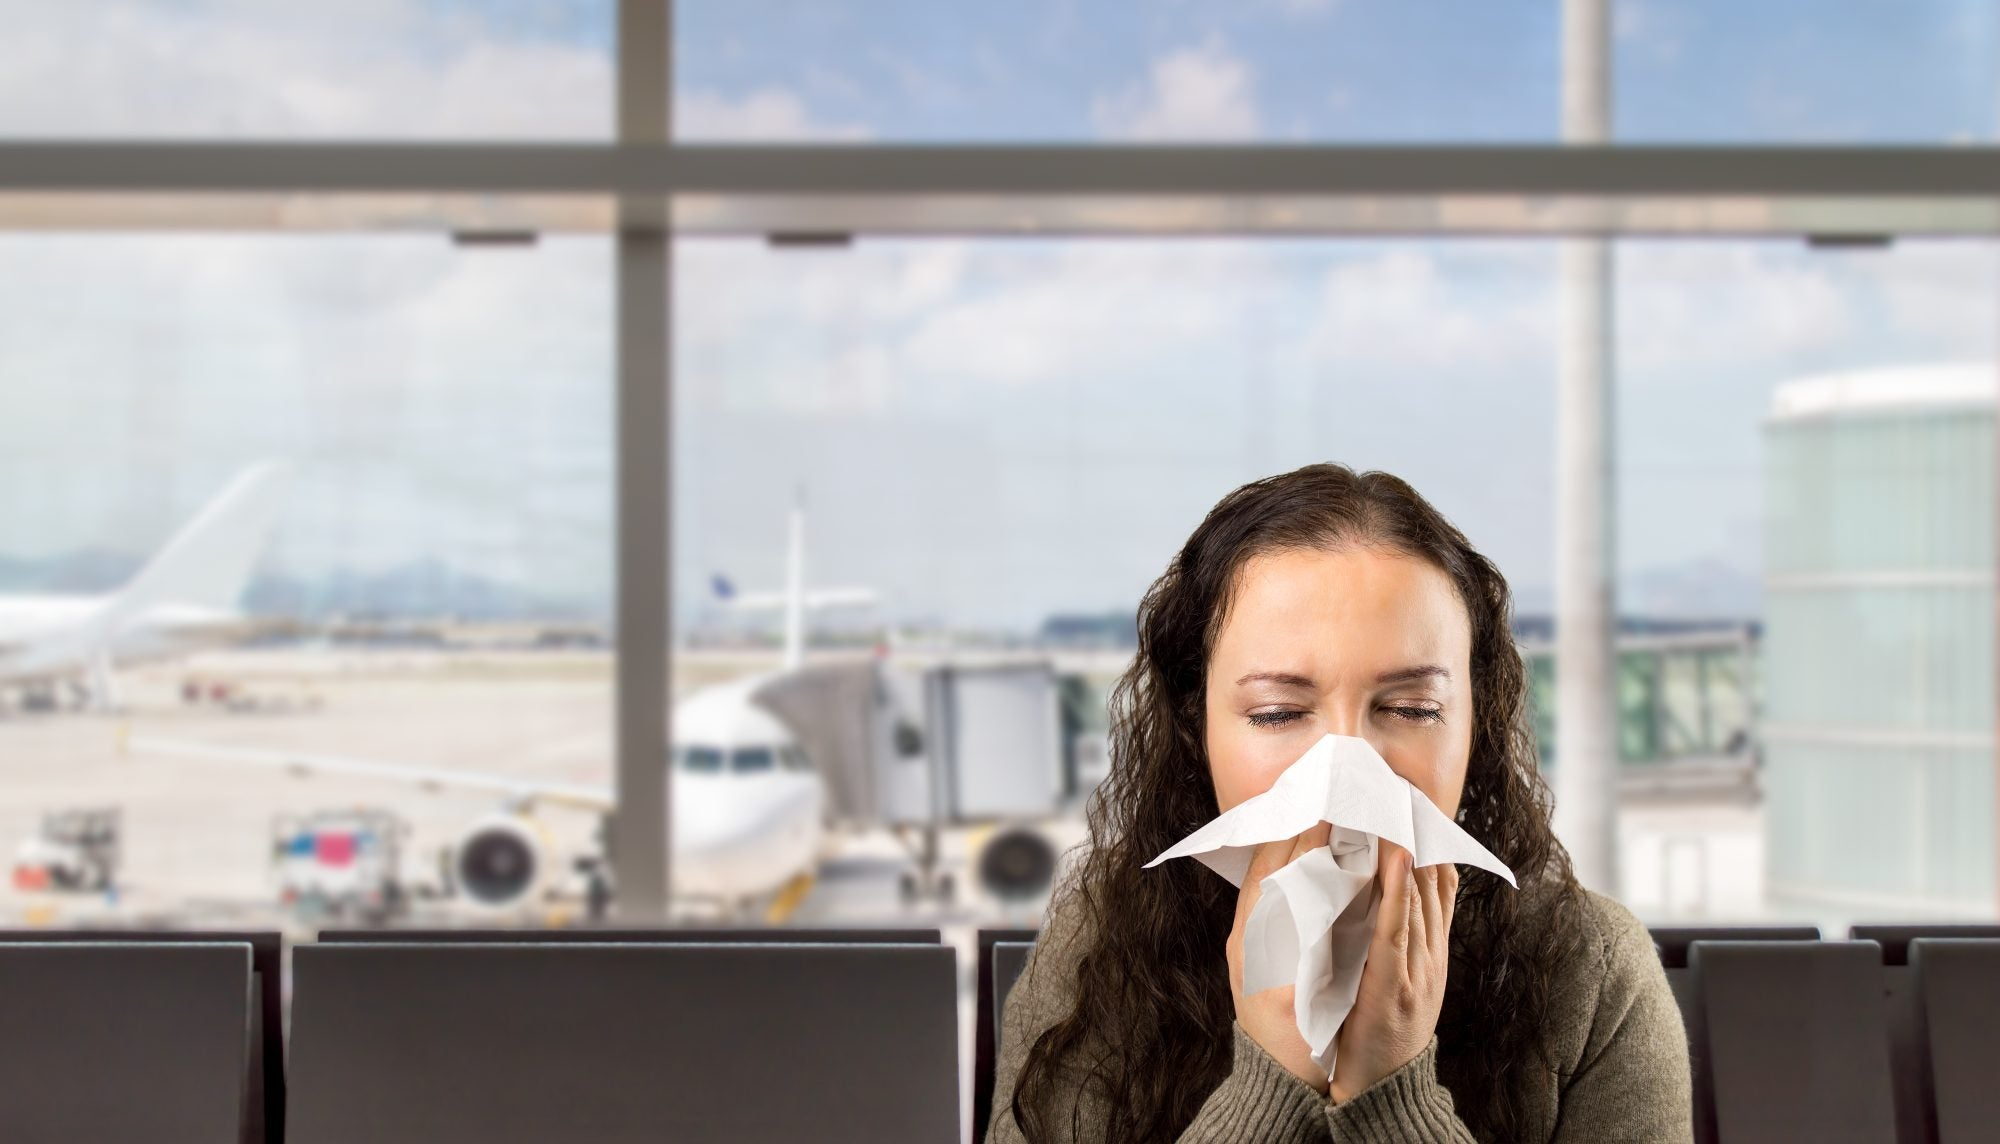 1 in 5 Passengers Get Sick on Every Flight – Here Are 10 Tips to Stay Healthy on Your Next Flight